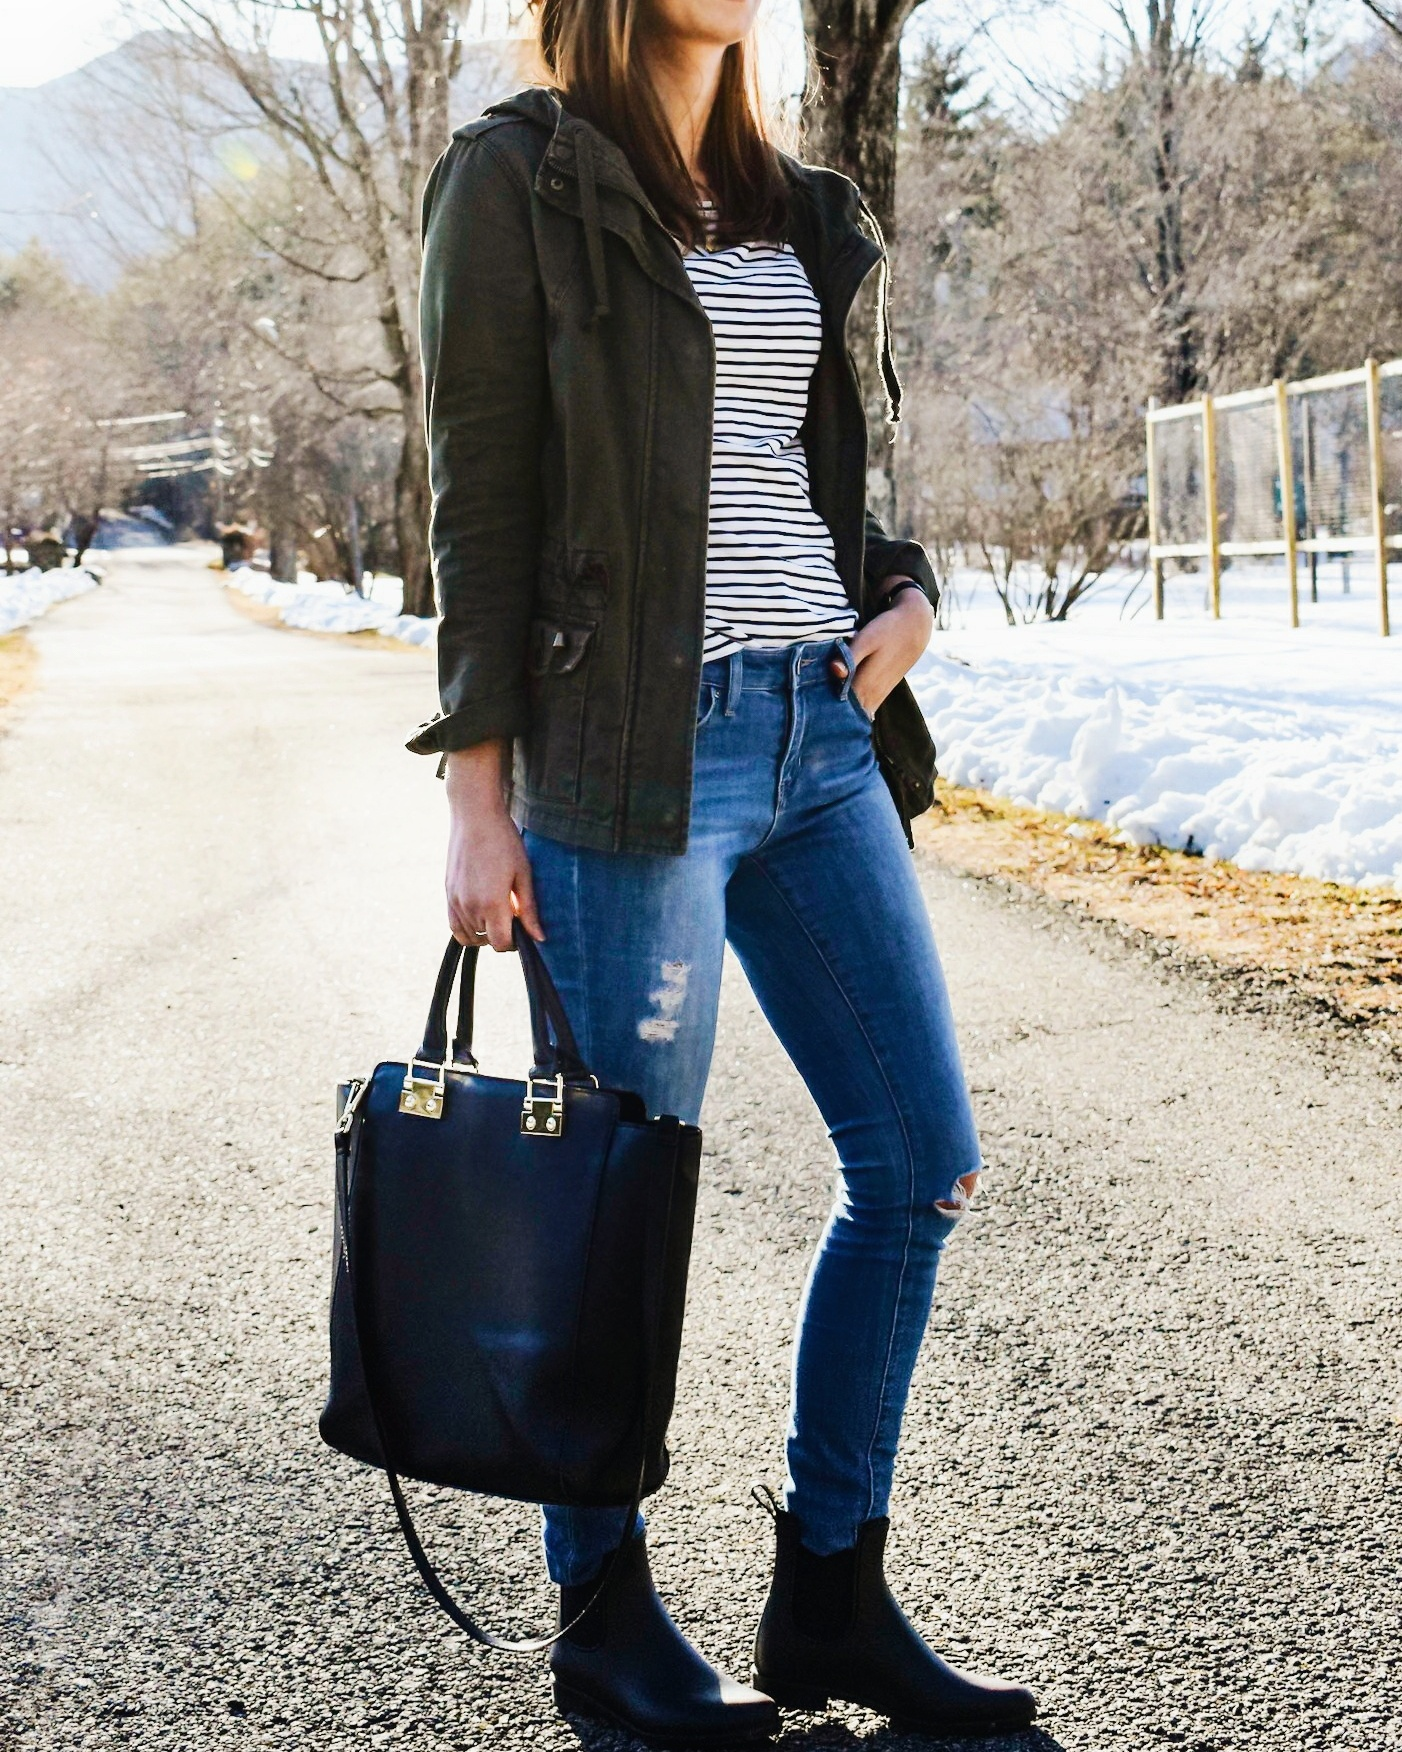 Wearing a green military jacket, striped shirt, distressed denim, Sam Edelman rain boots, black tote bag